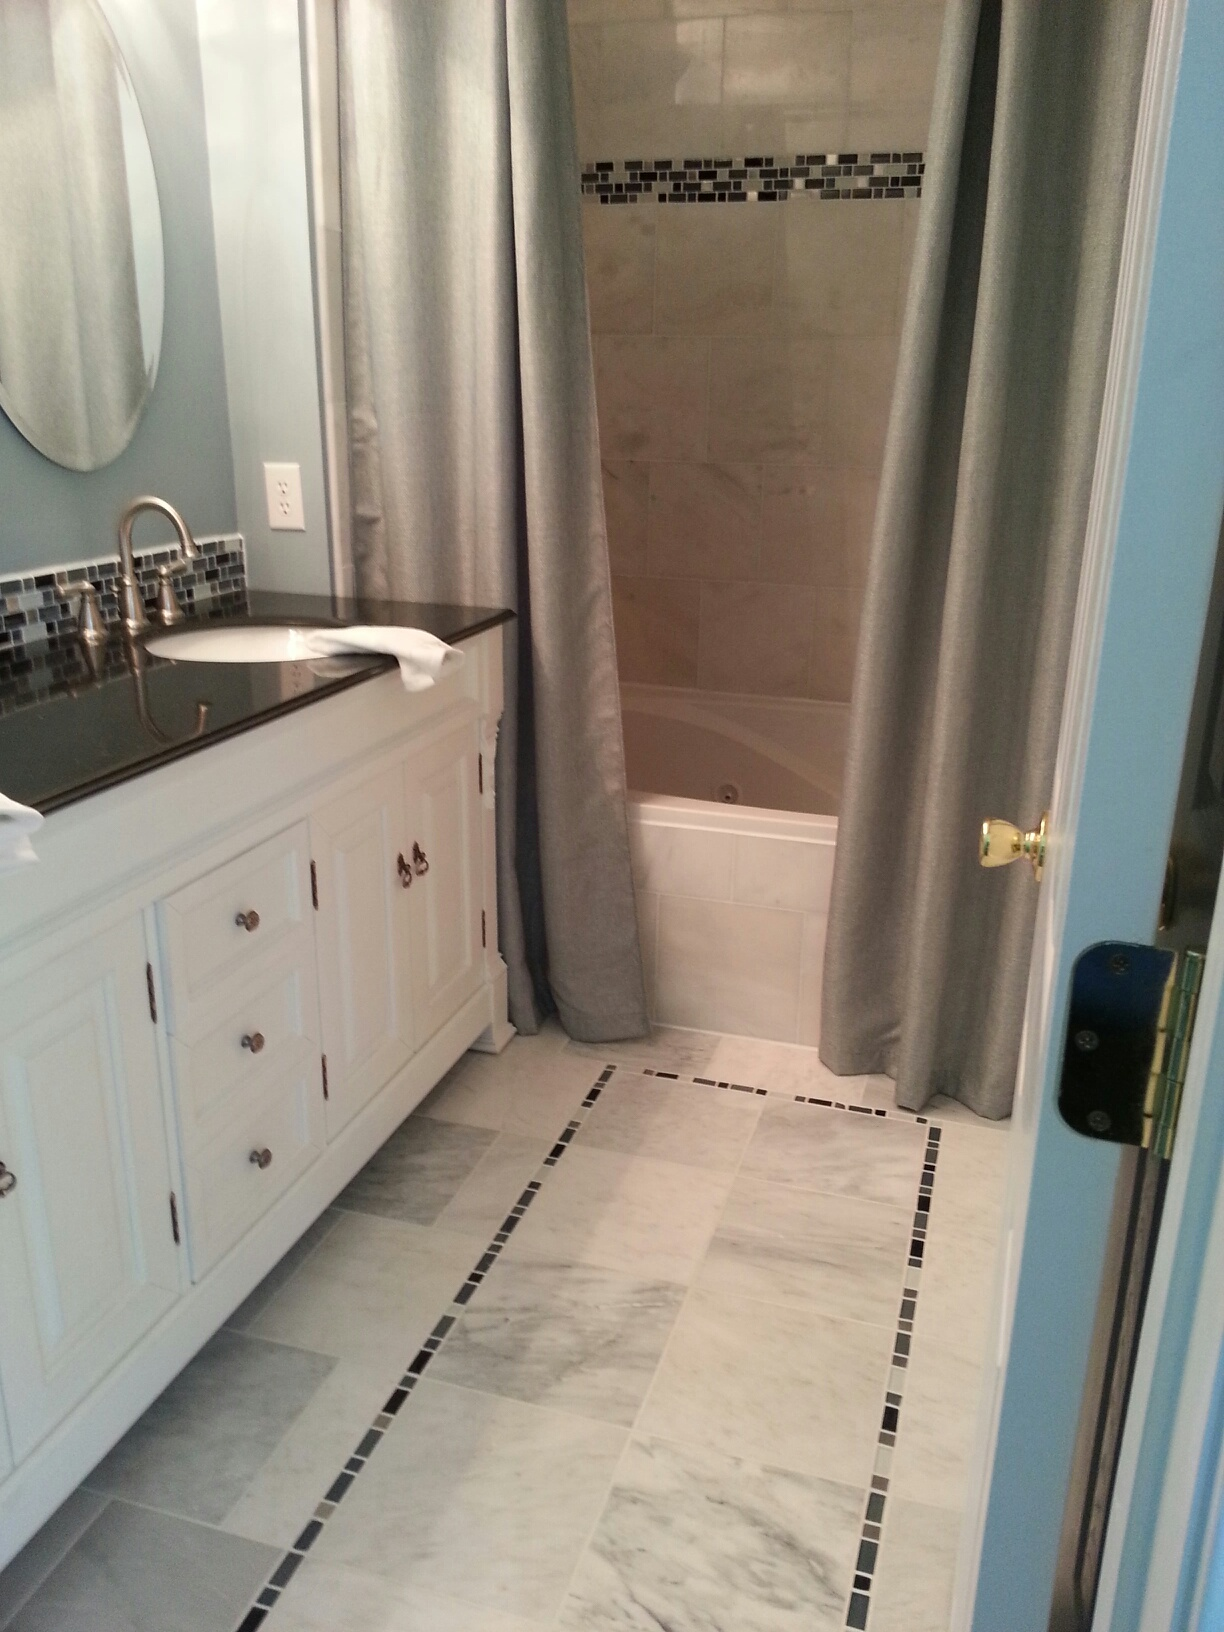 pictured here is a fabulous bathroom remodel with marble floor and shower wall tiles accented with a beautiful colored glass mosaic tile